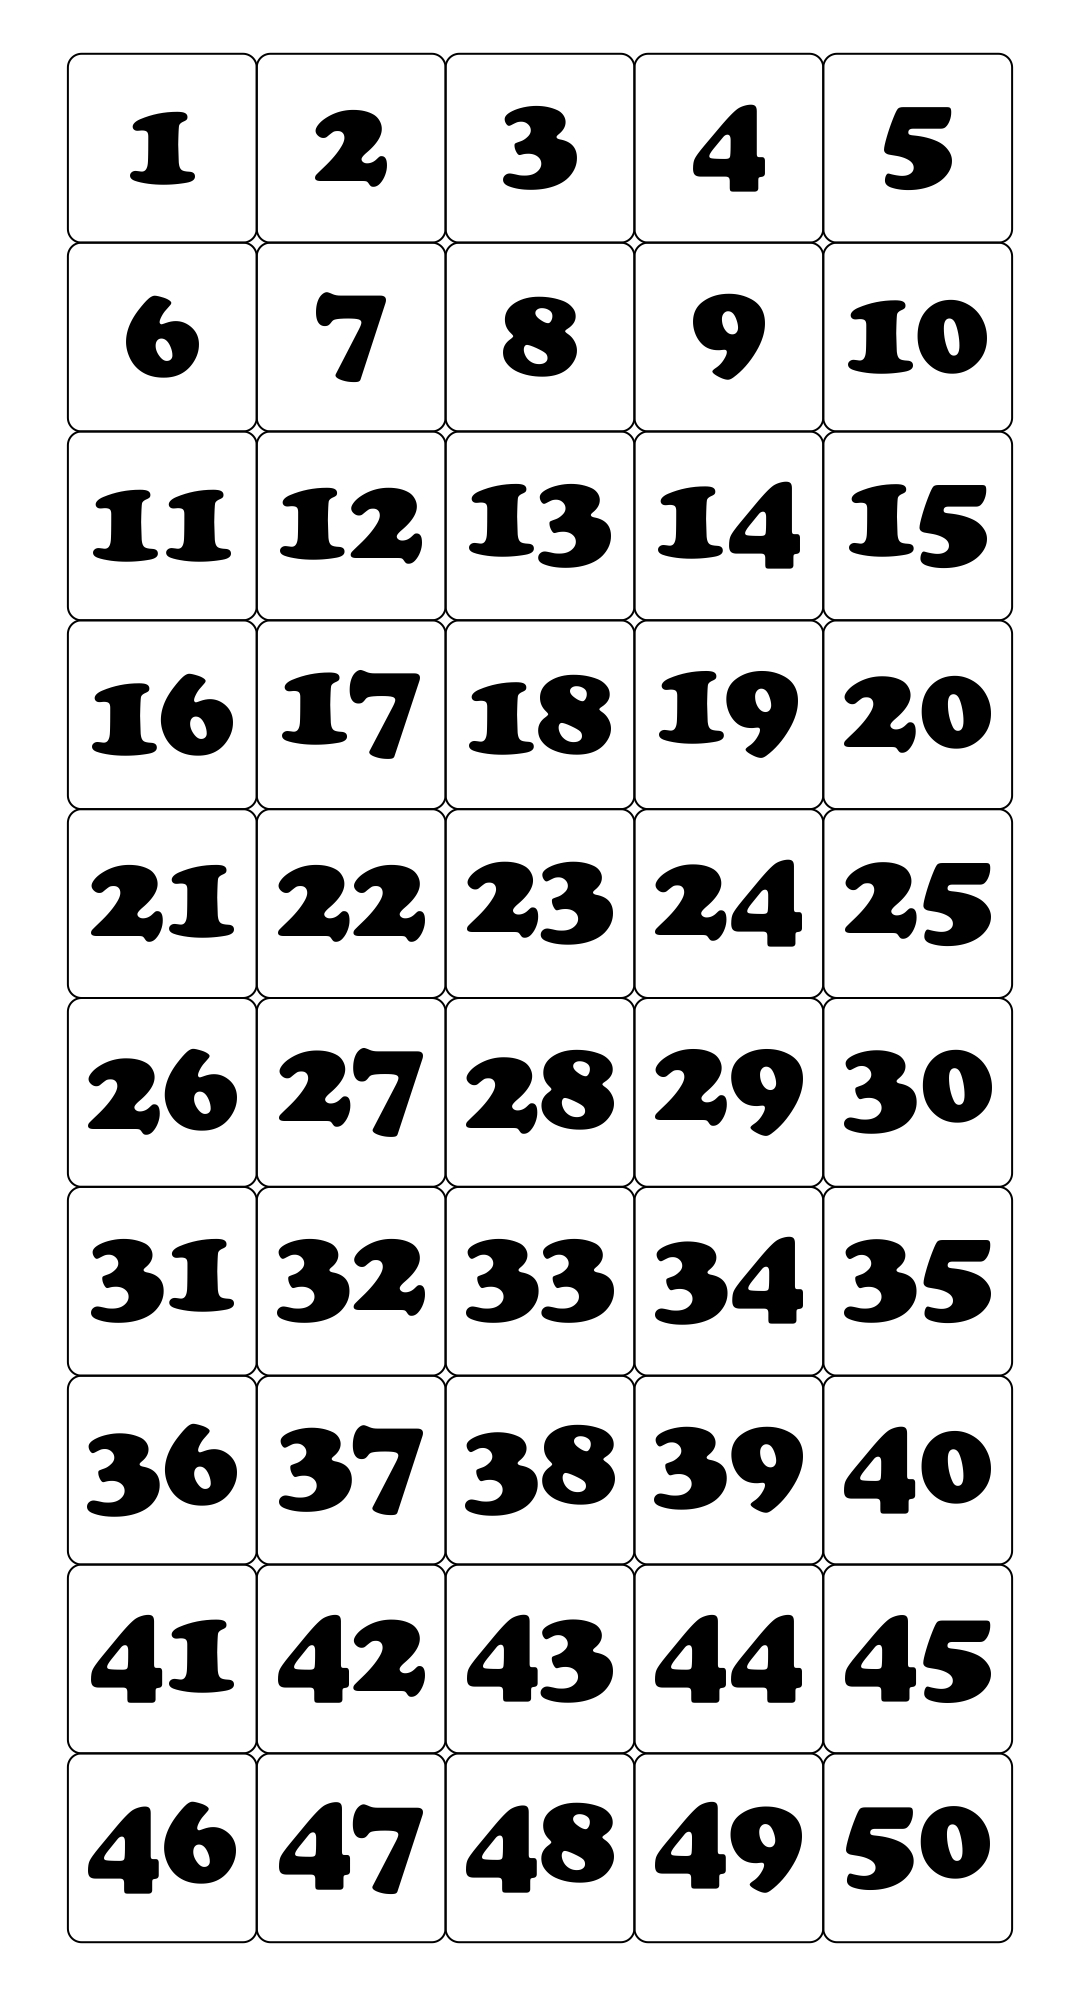 Printable Number Cards 1 50